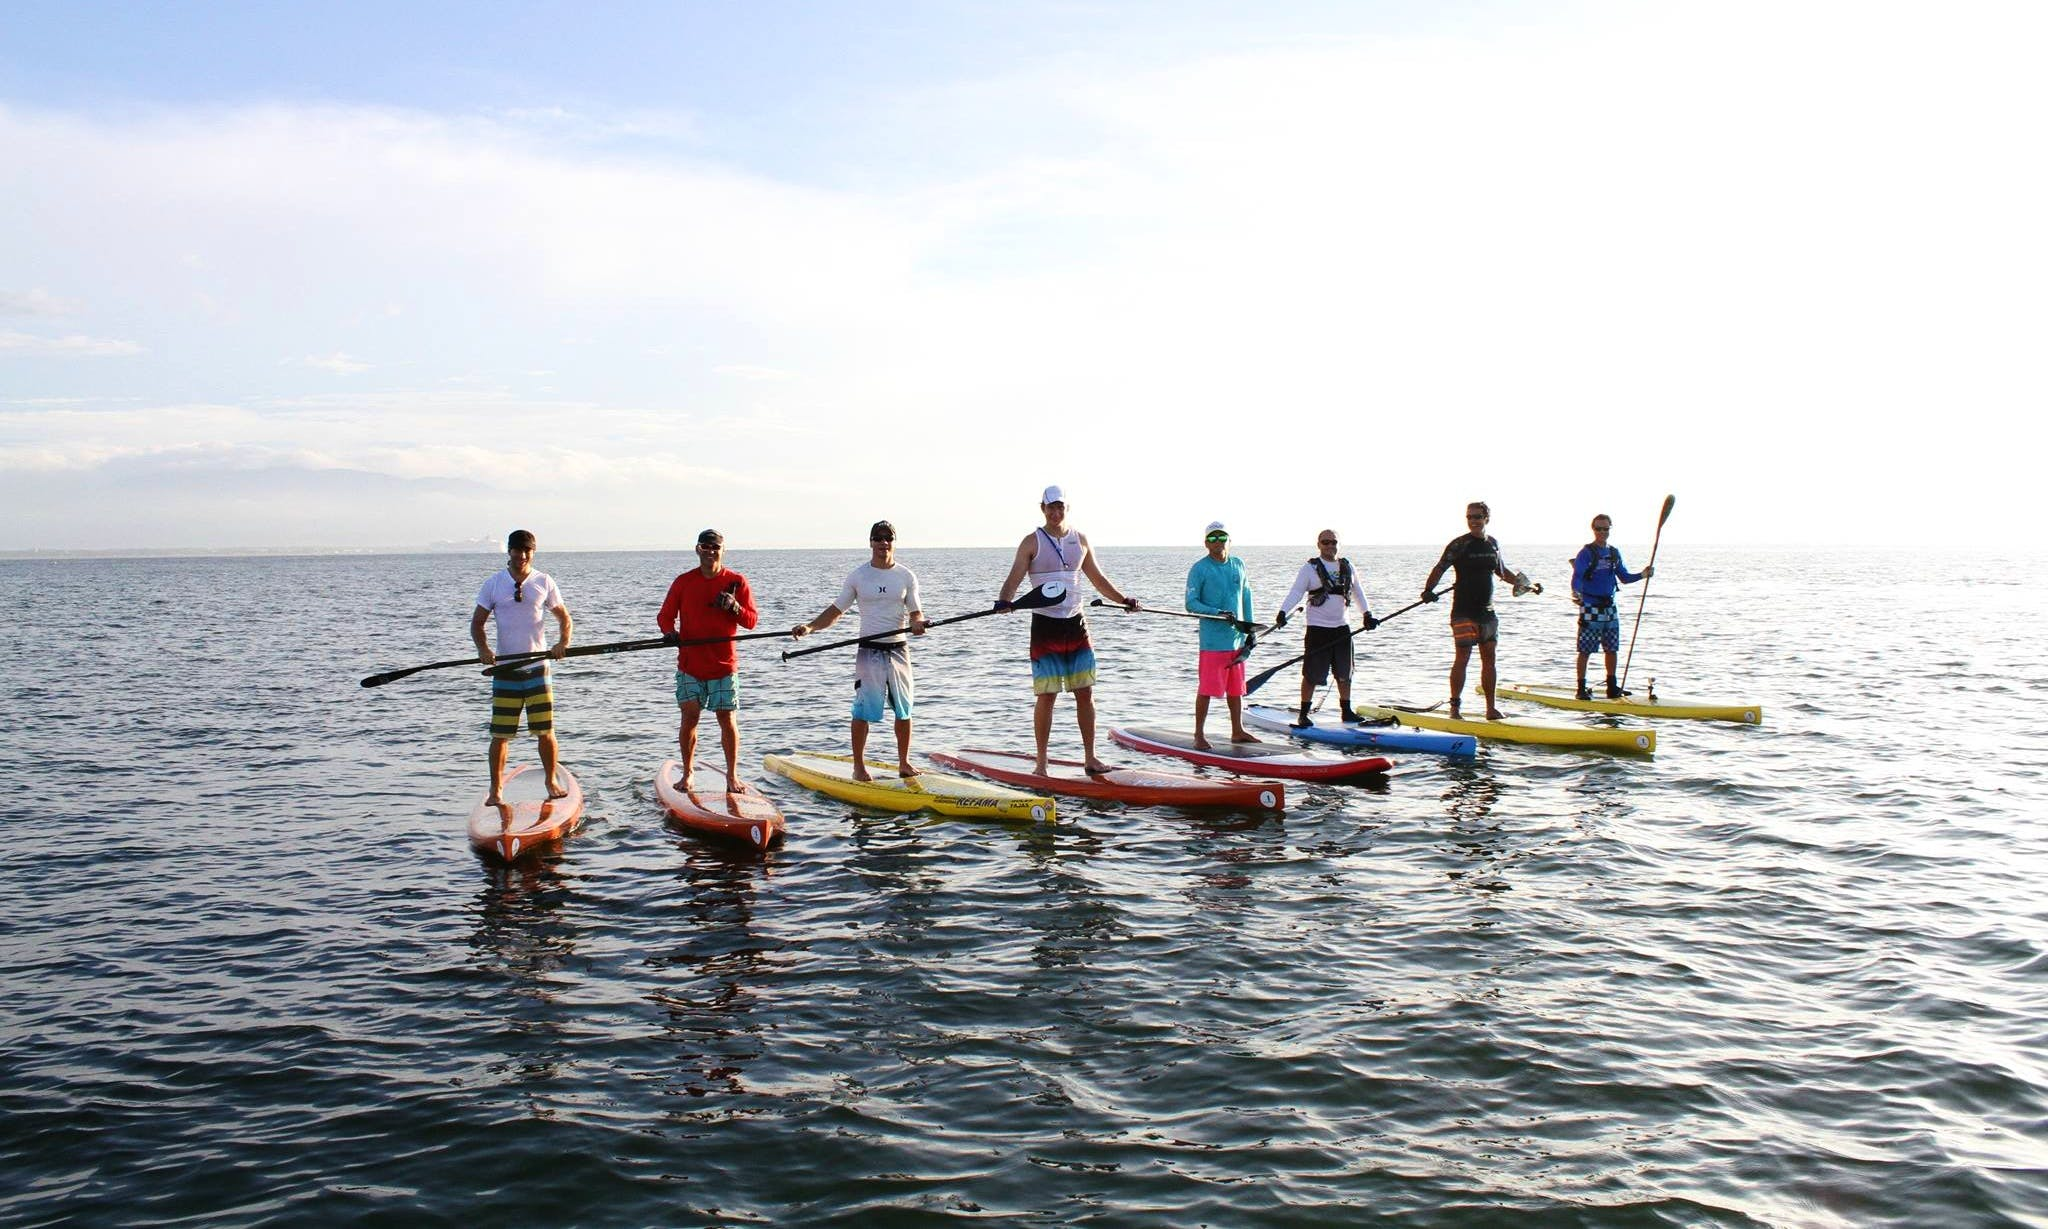 SUP Flatwater Paddling & Yoga Lessons in Jaco